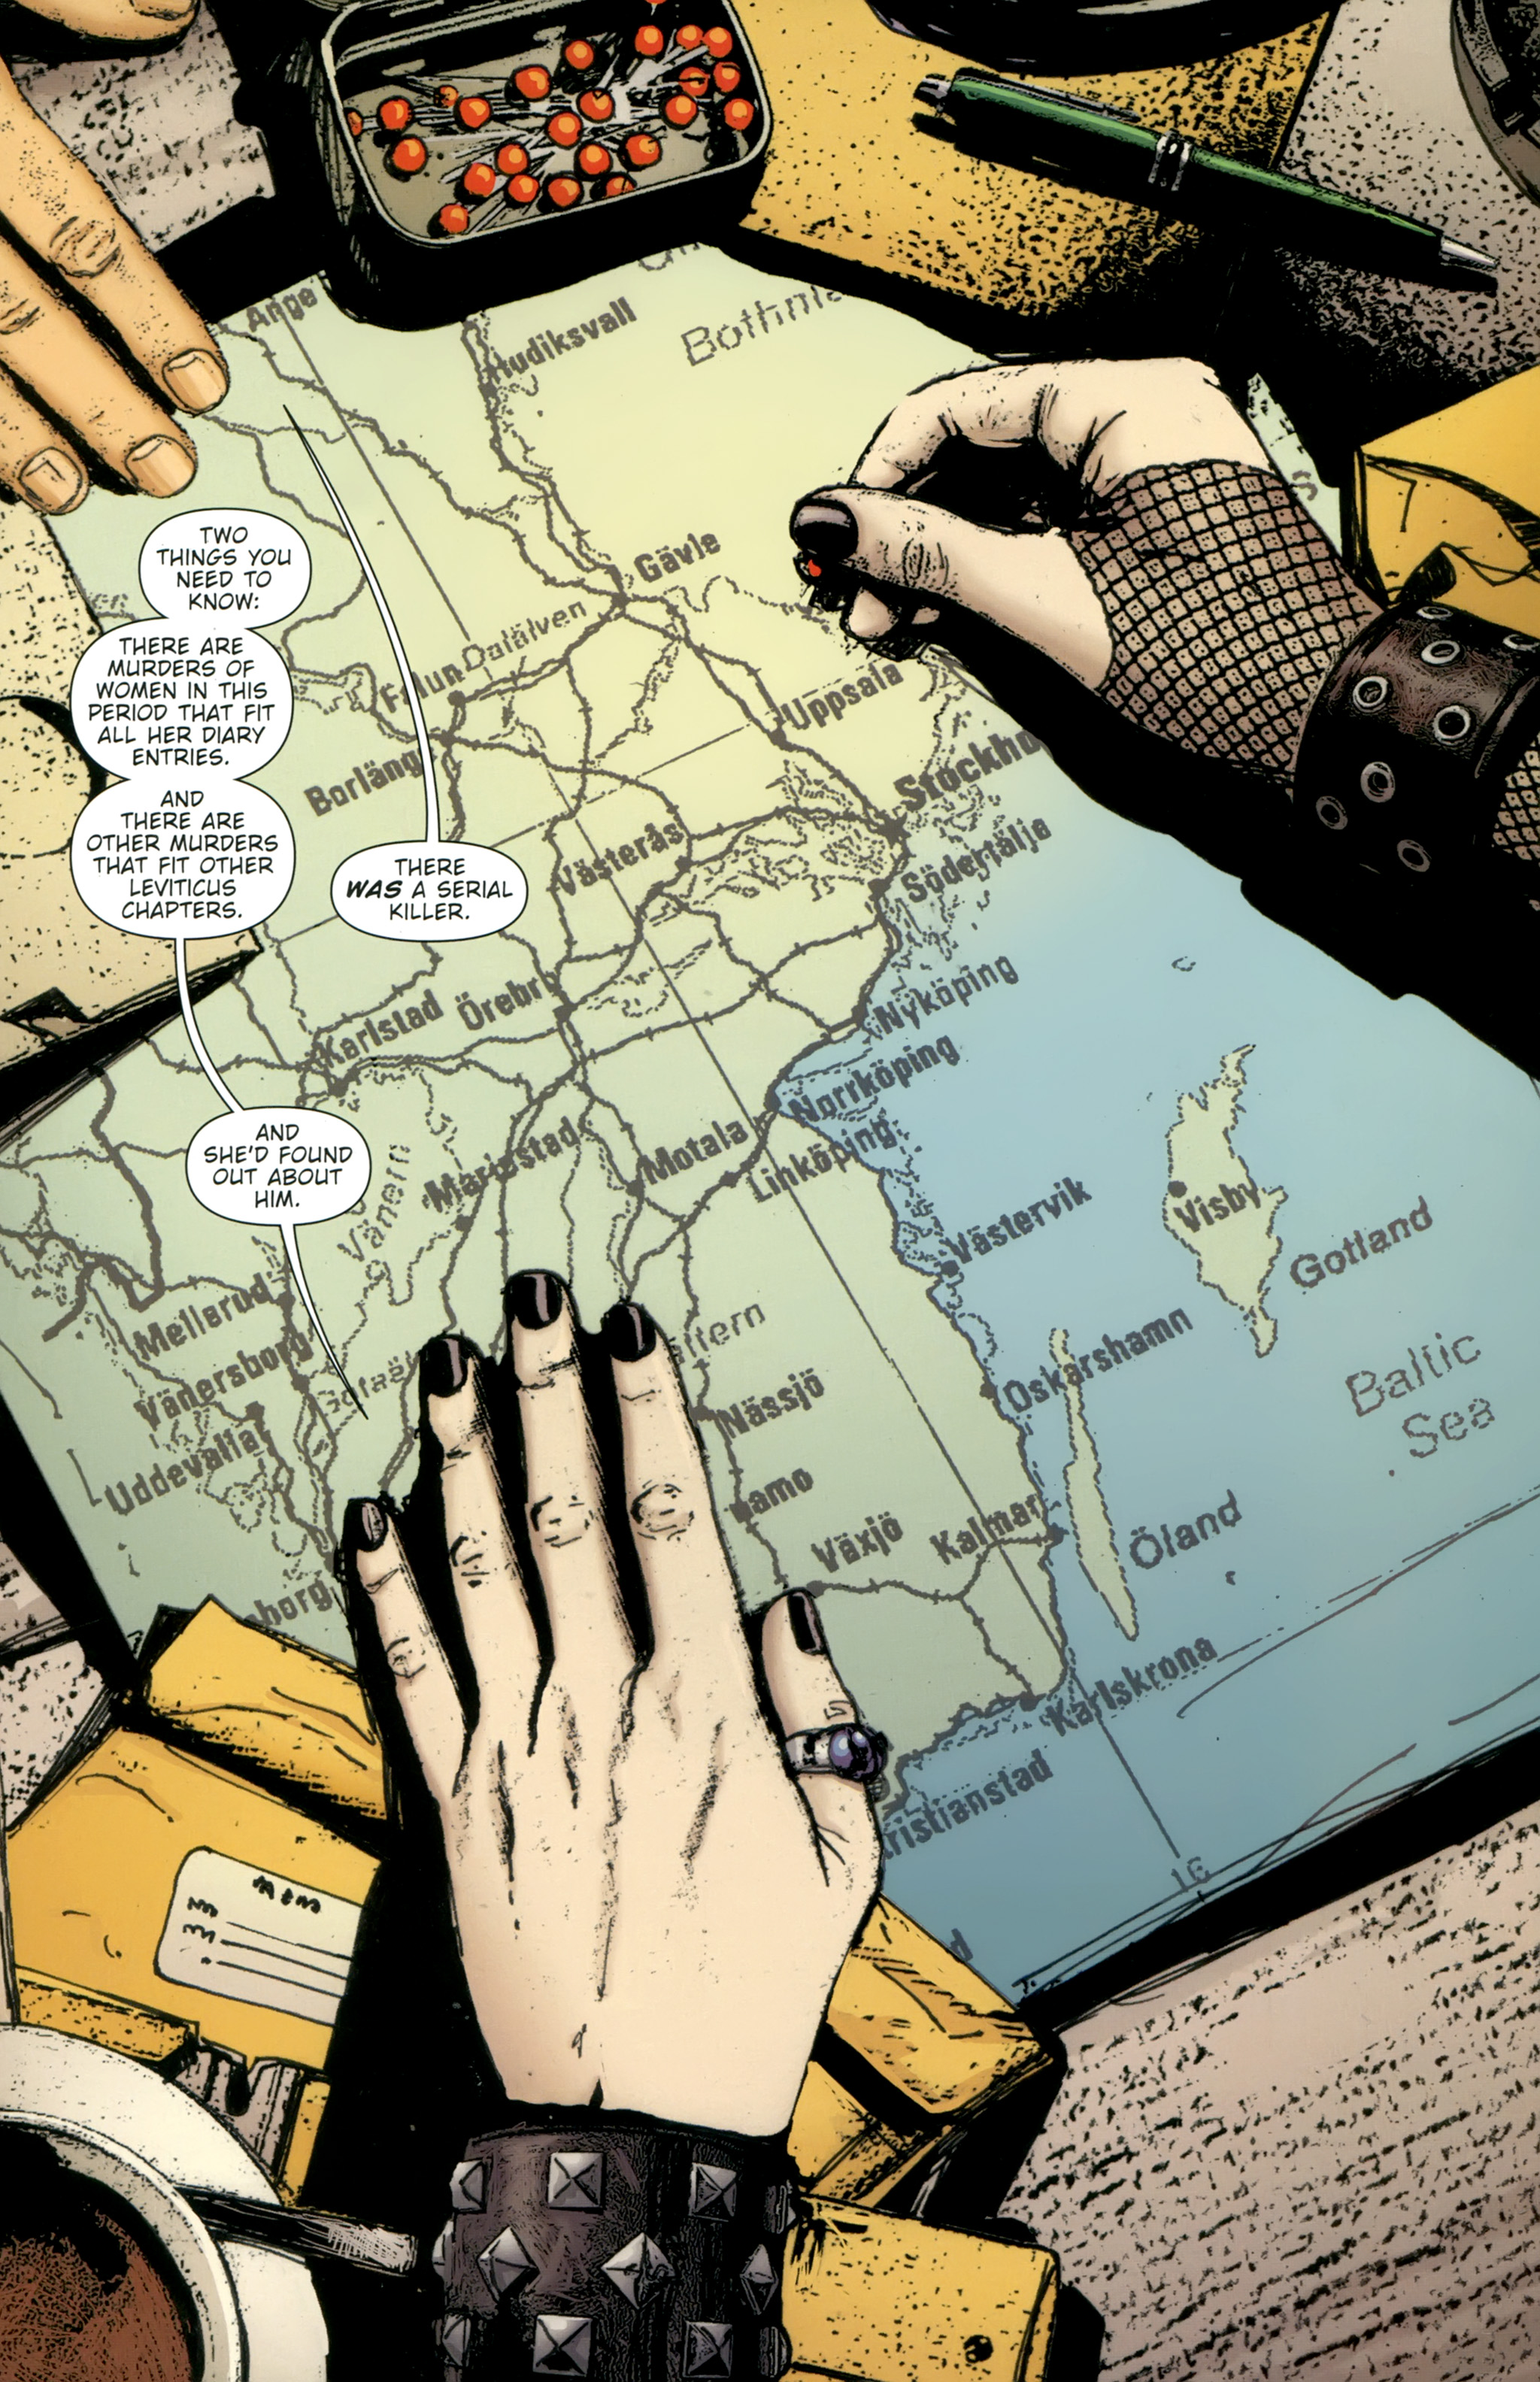 Read online The Girl With the Dragon Tattoo comic -  Issue # TPB 2 - 63